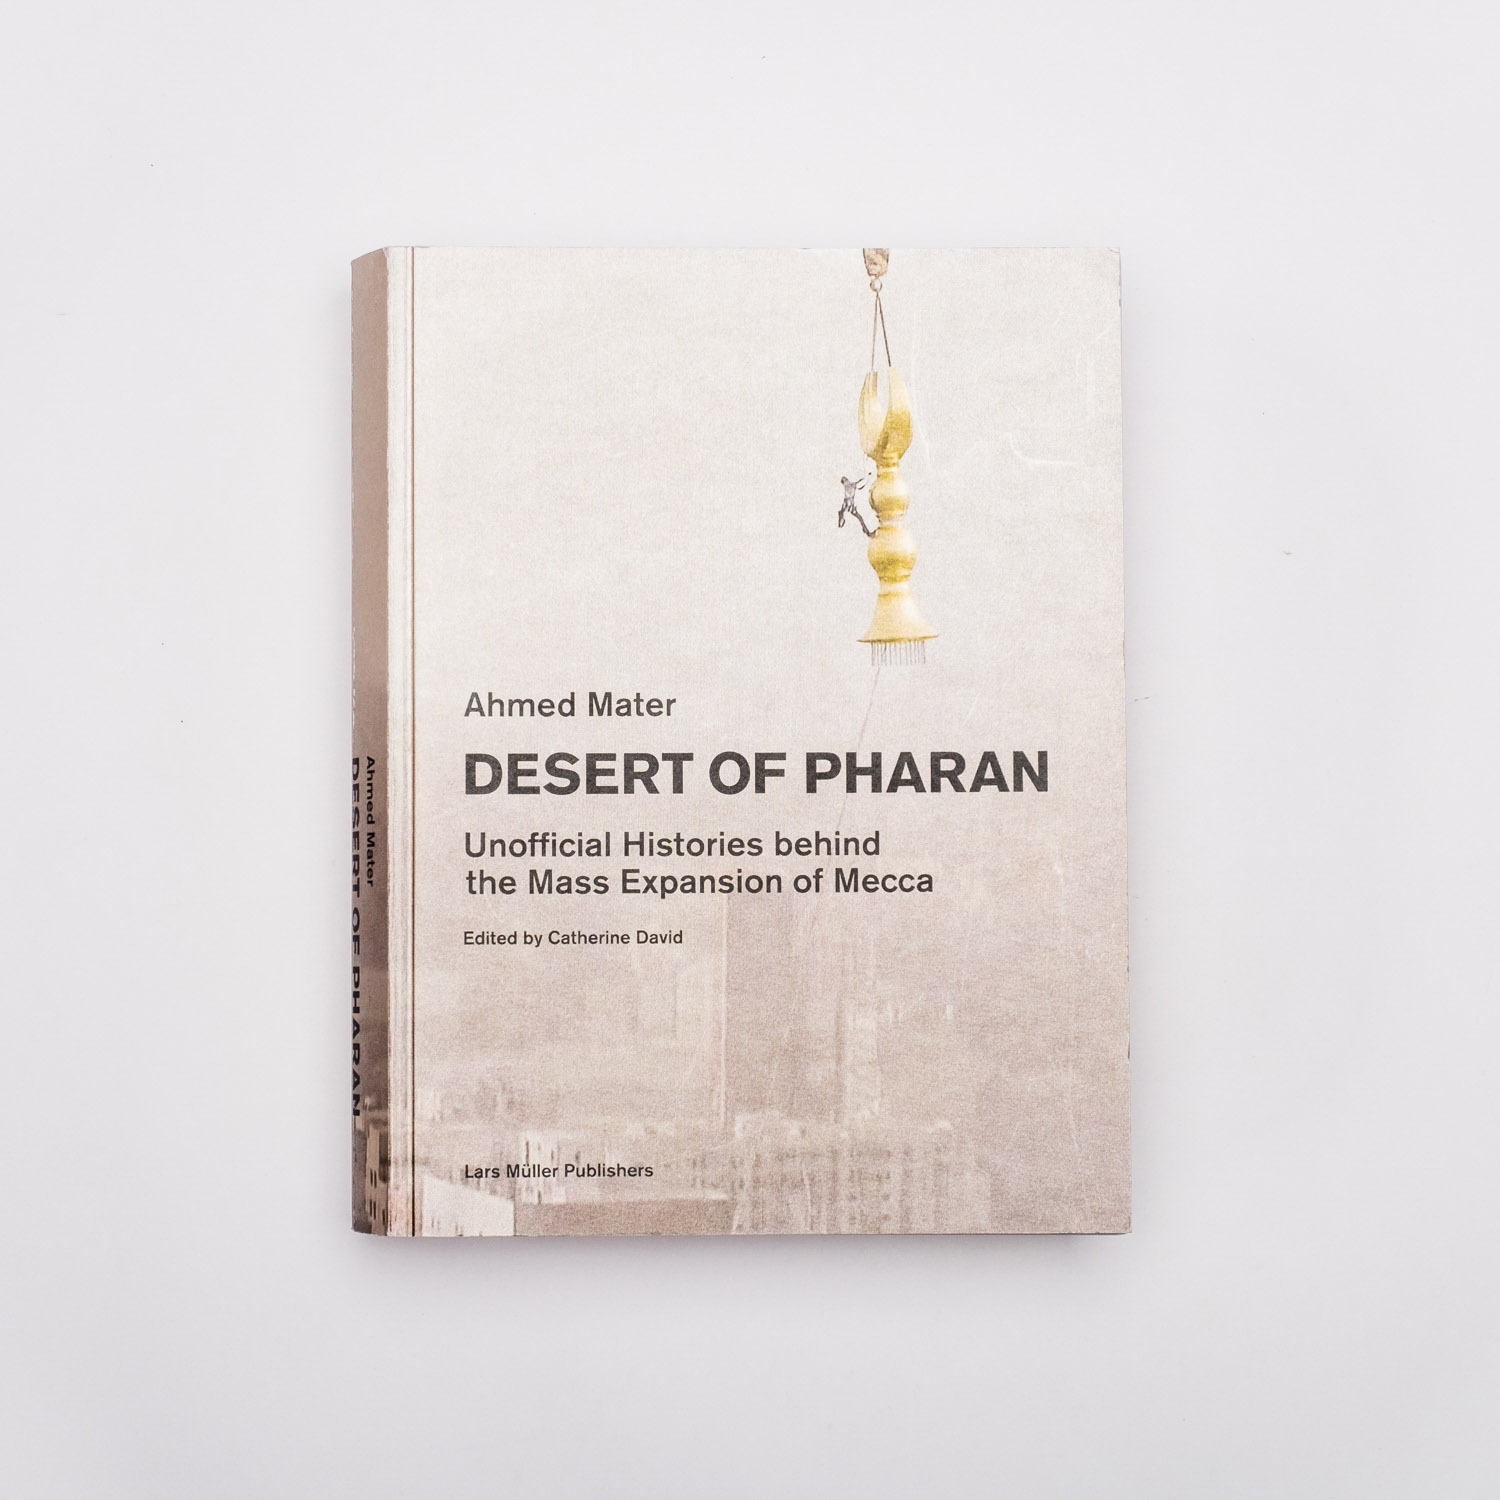 Desert of Pharan: Unofficial Histories Behind the Mass Expansion of Mecca